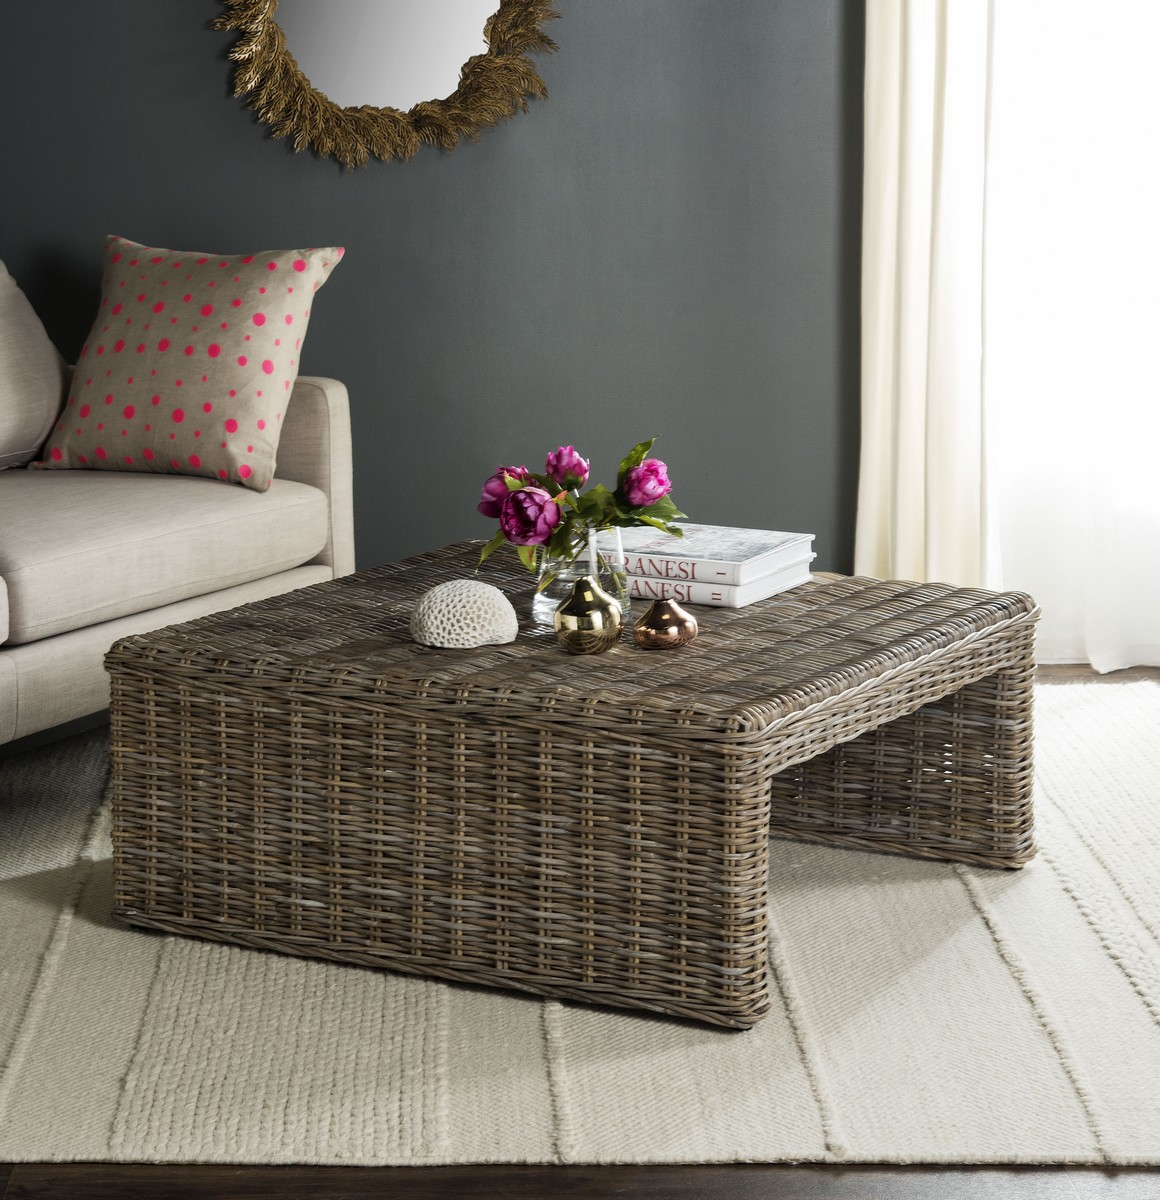 Rustic And Casual, This Artisan Woven Natural Rattan Side Table Is The  Perfect Complement To Contemporary Rooms. Crafted Of Sustainable Kubu Rattan  And ... Part 11